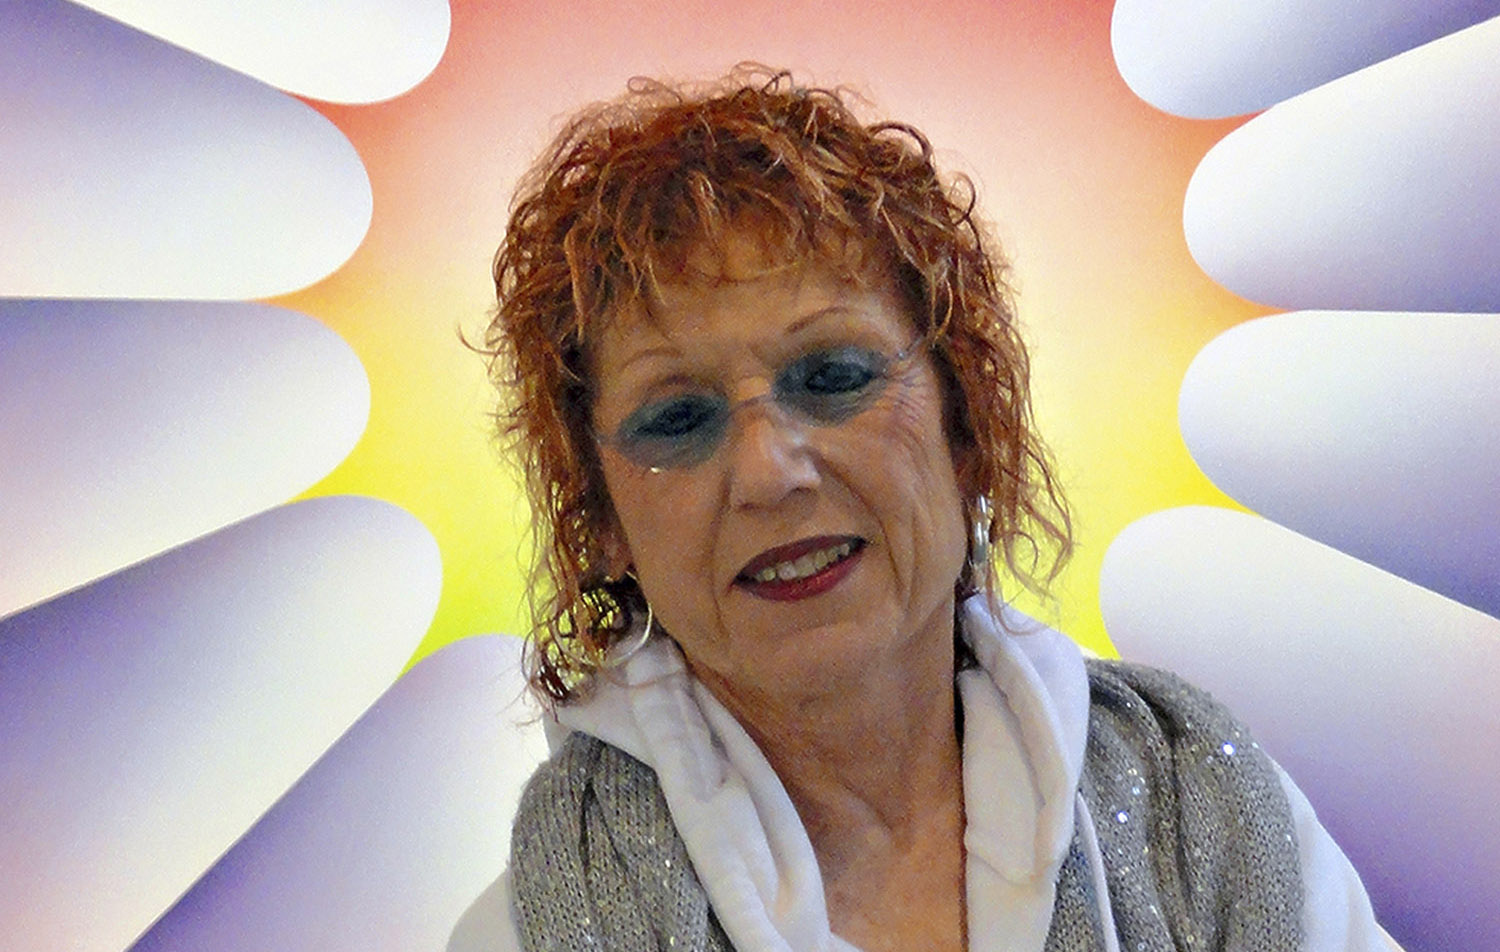 Trailblazing artist Judy Chicago is coming to town for events at JCCSF and an exhibition at Jessica Silverman Gallery.